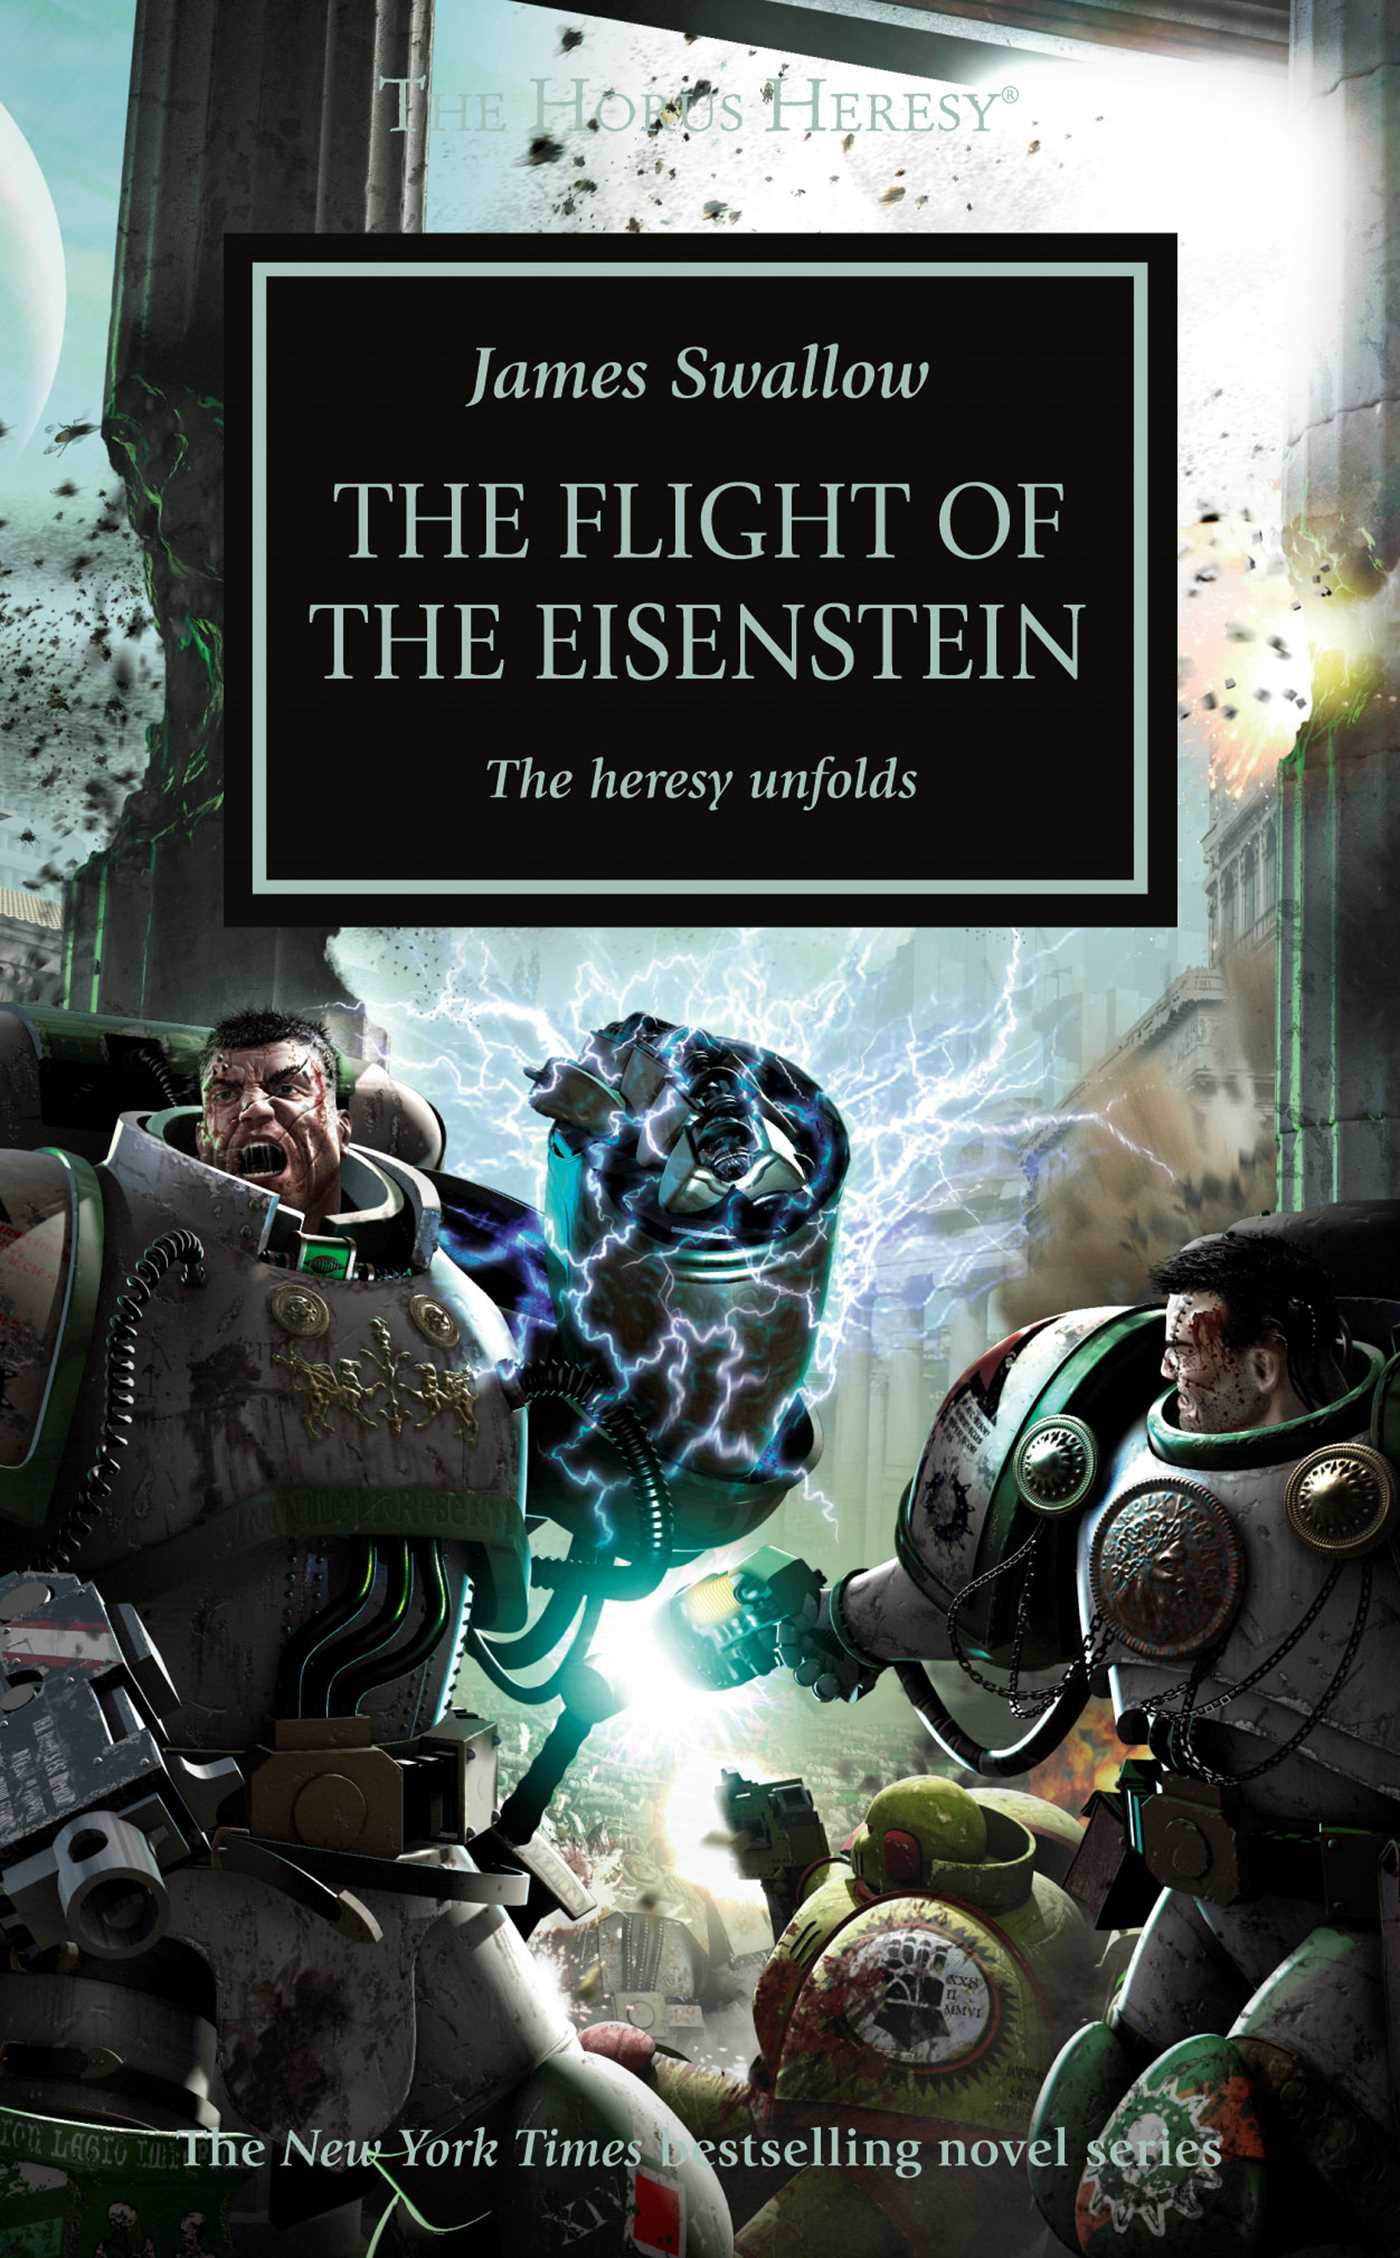 Flight-of-the-eisenstein-9781849708128_hr